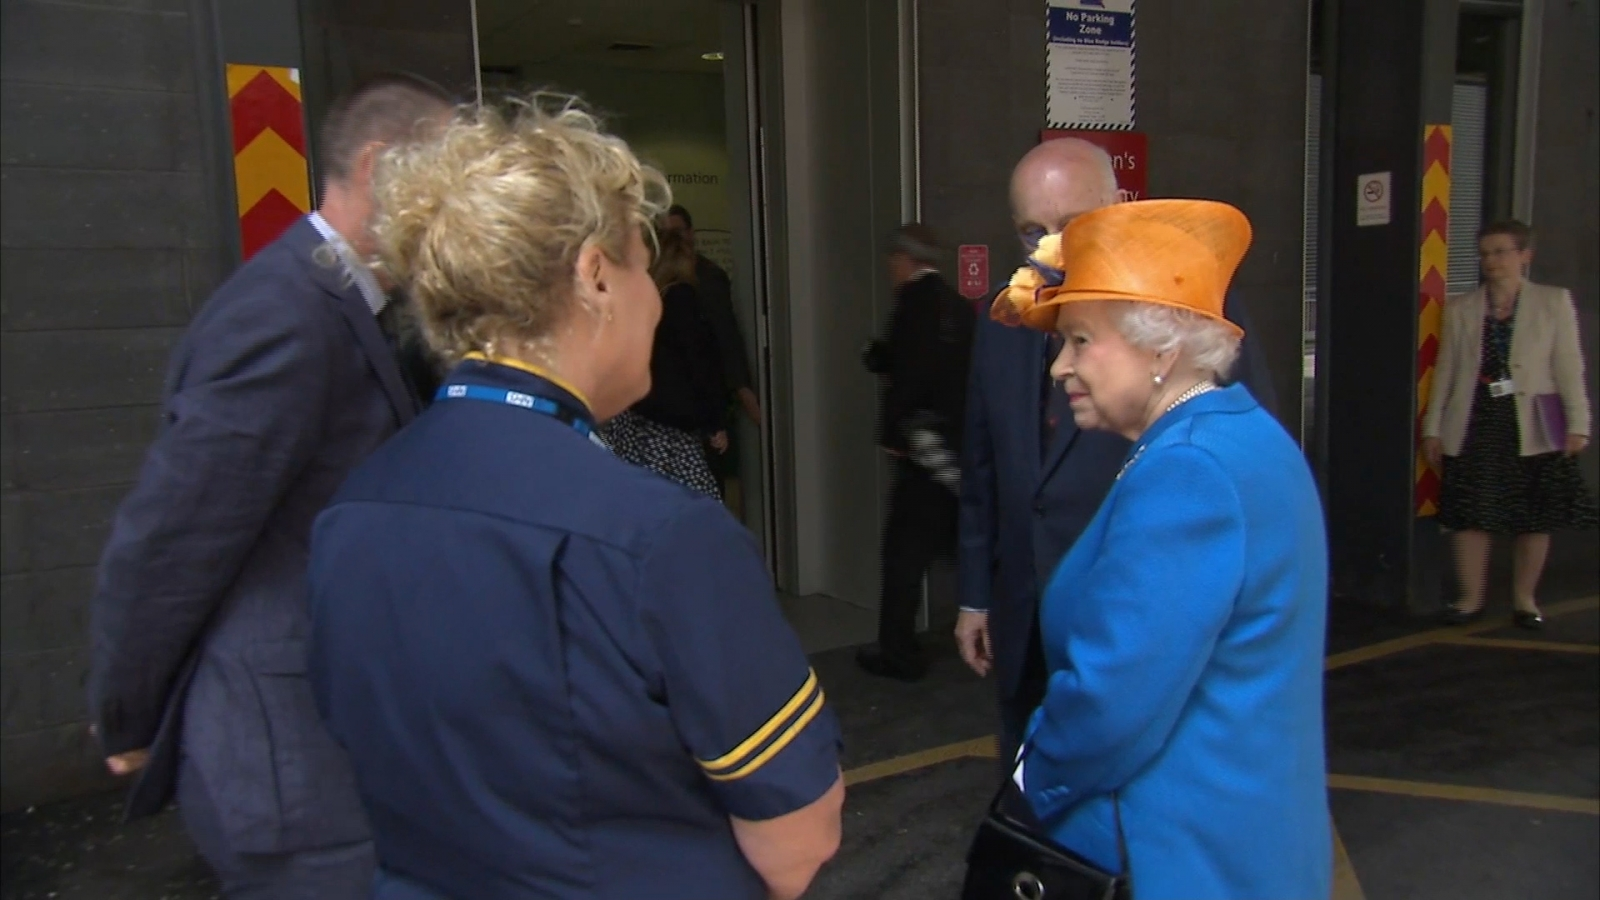 the-queen-arrives-at-manchester-hospital-to-meet-victims-and-staff